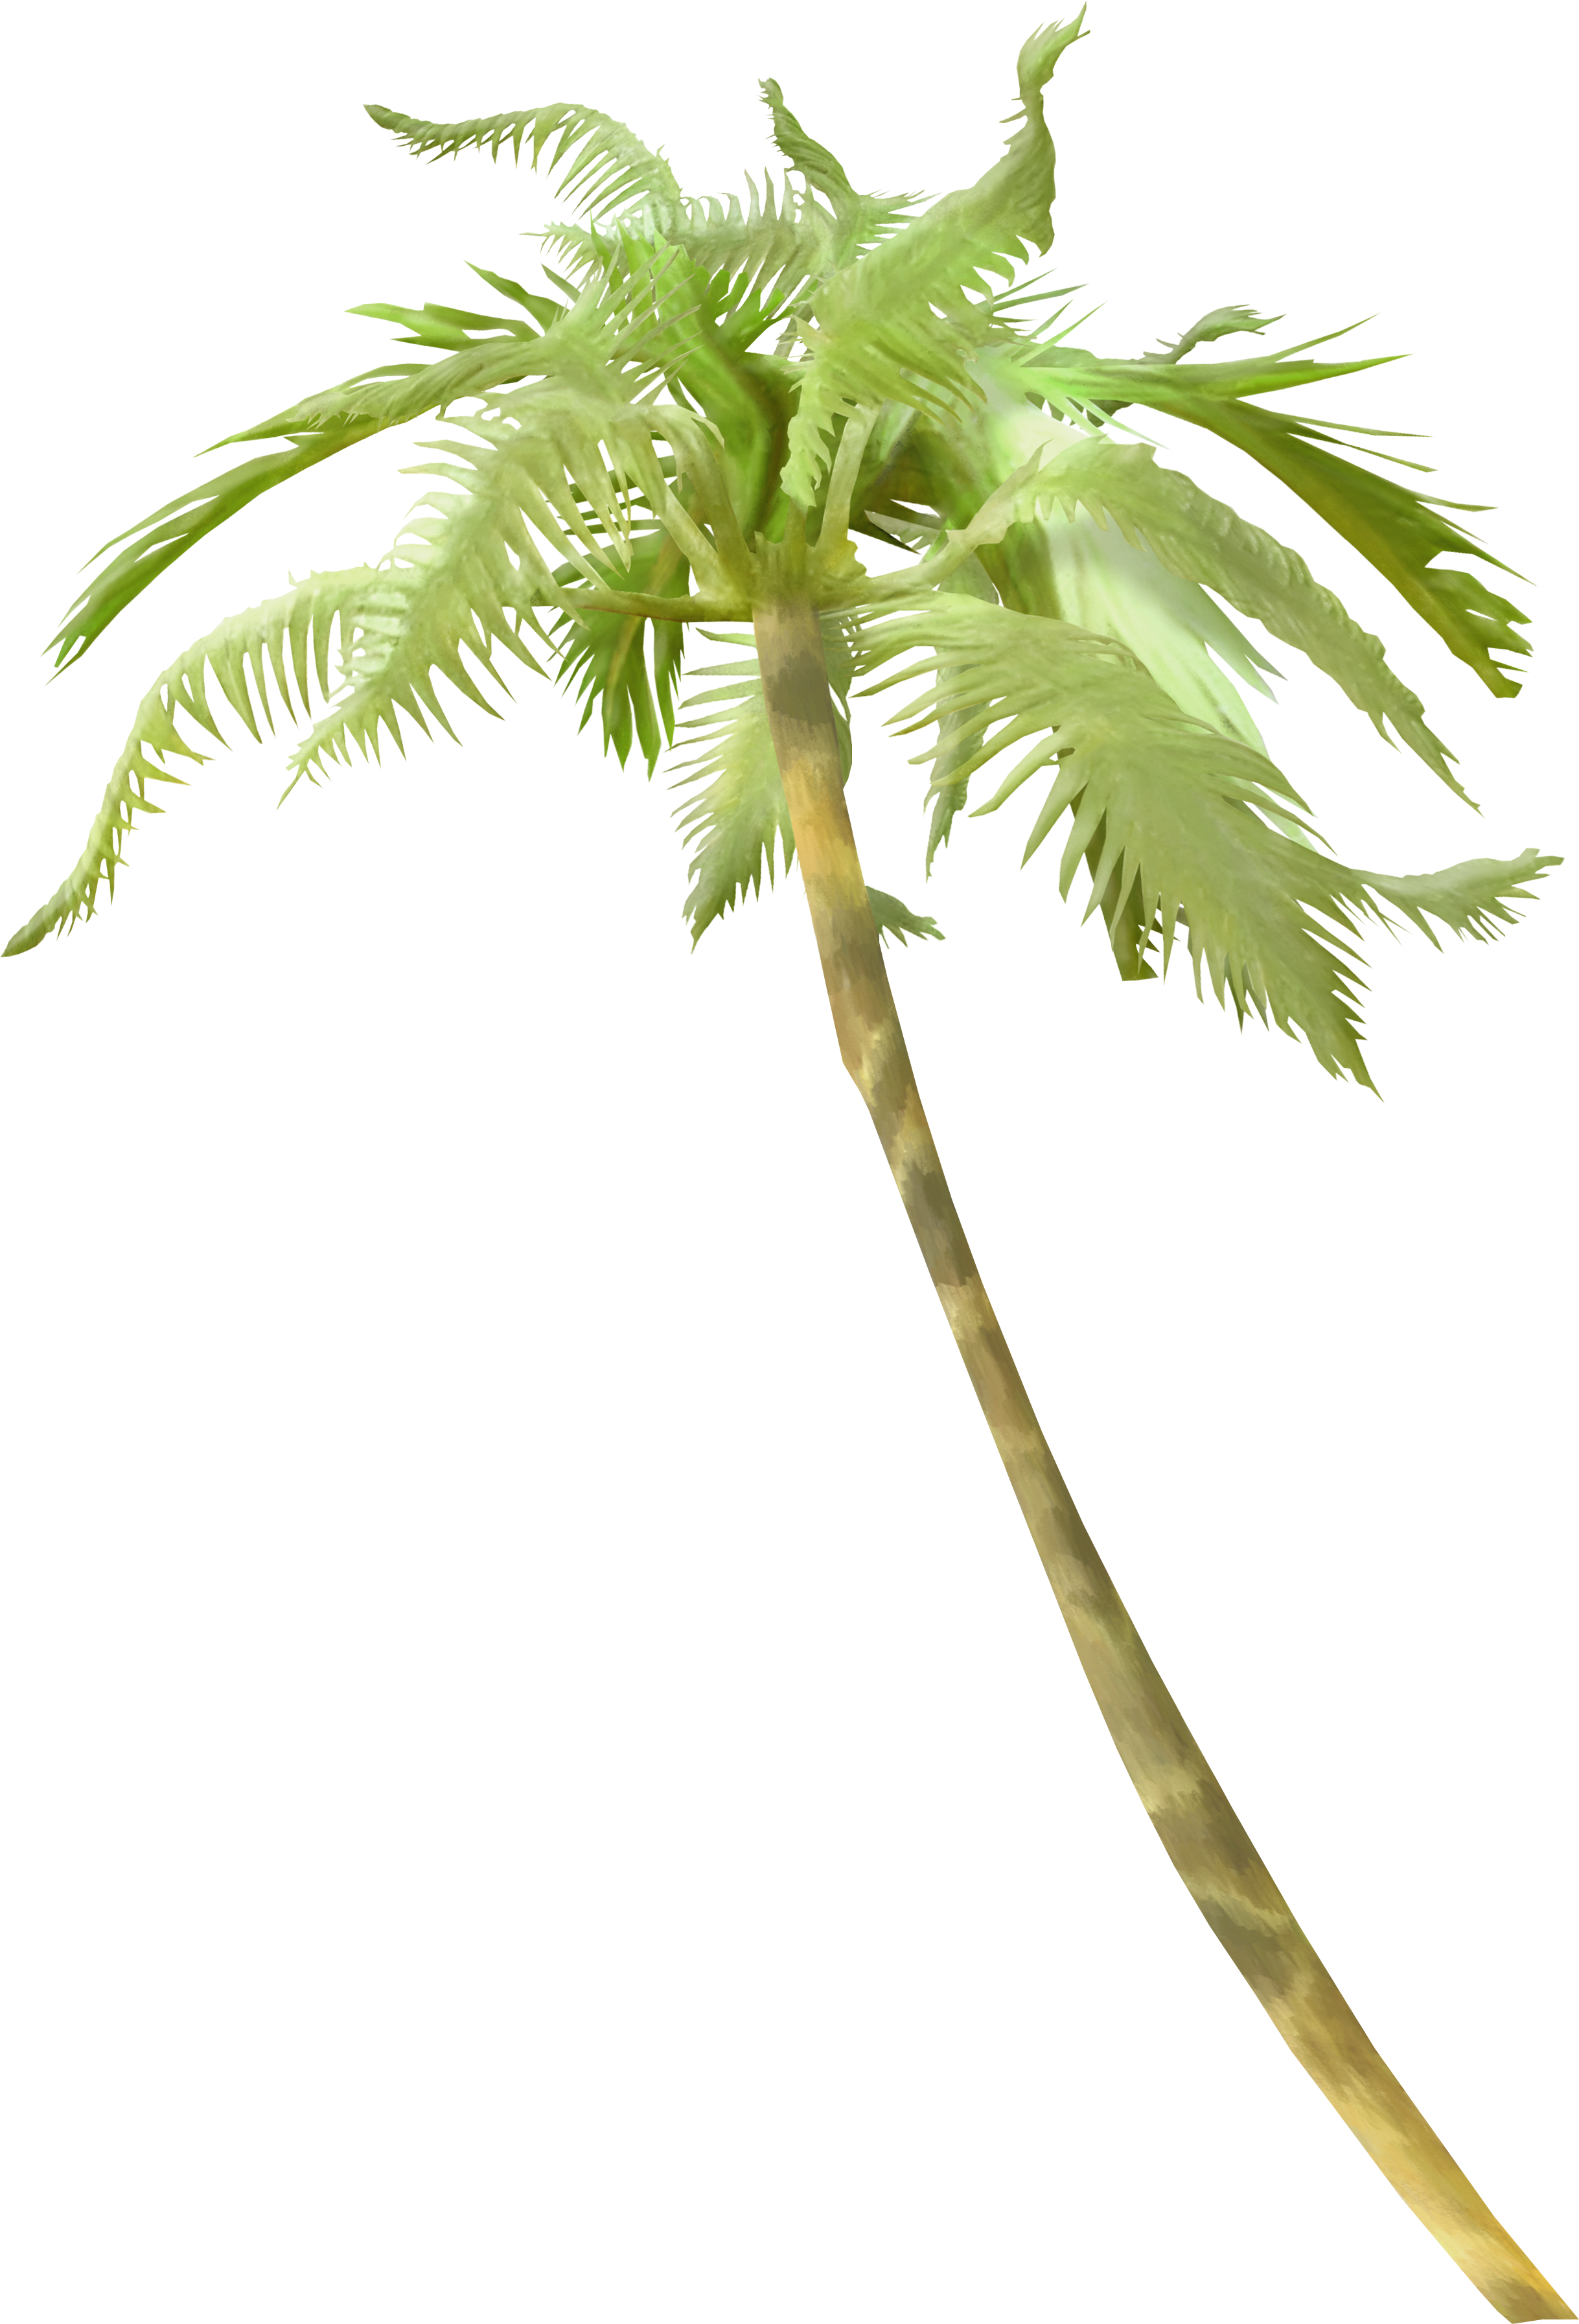 Curved palm tree png. Light arecaceae clip art